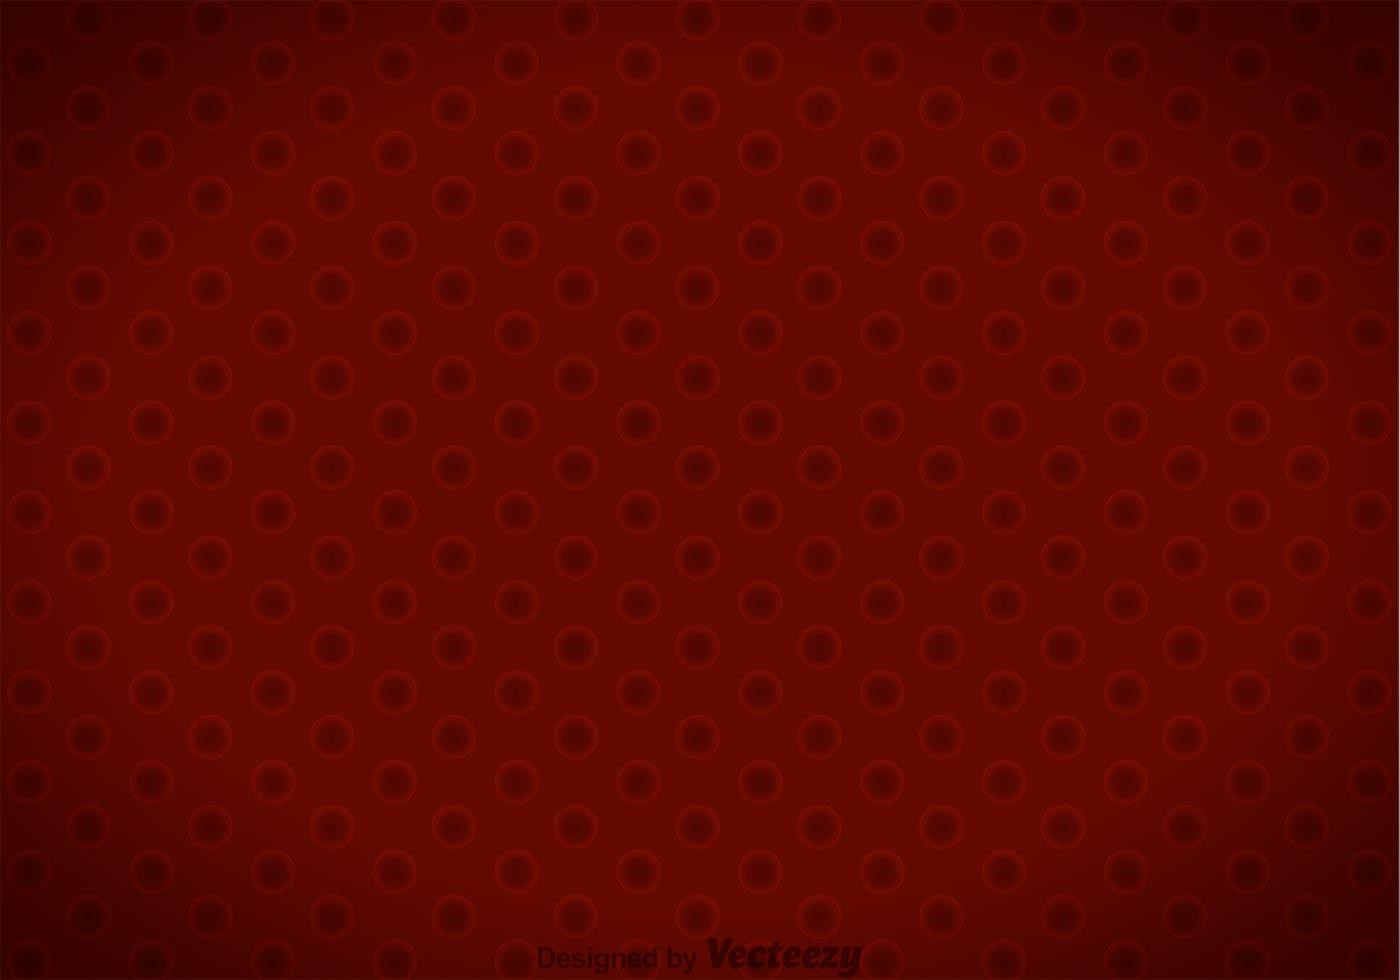 maroon abstract backgrounds wallpaper cave maroon abstract backgrounds wallpaper